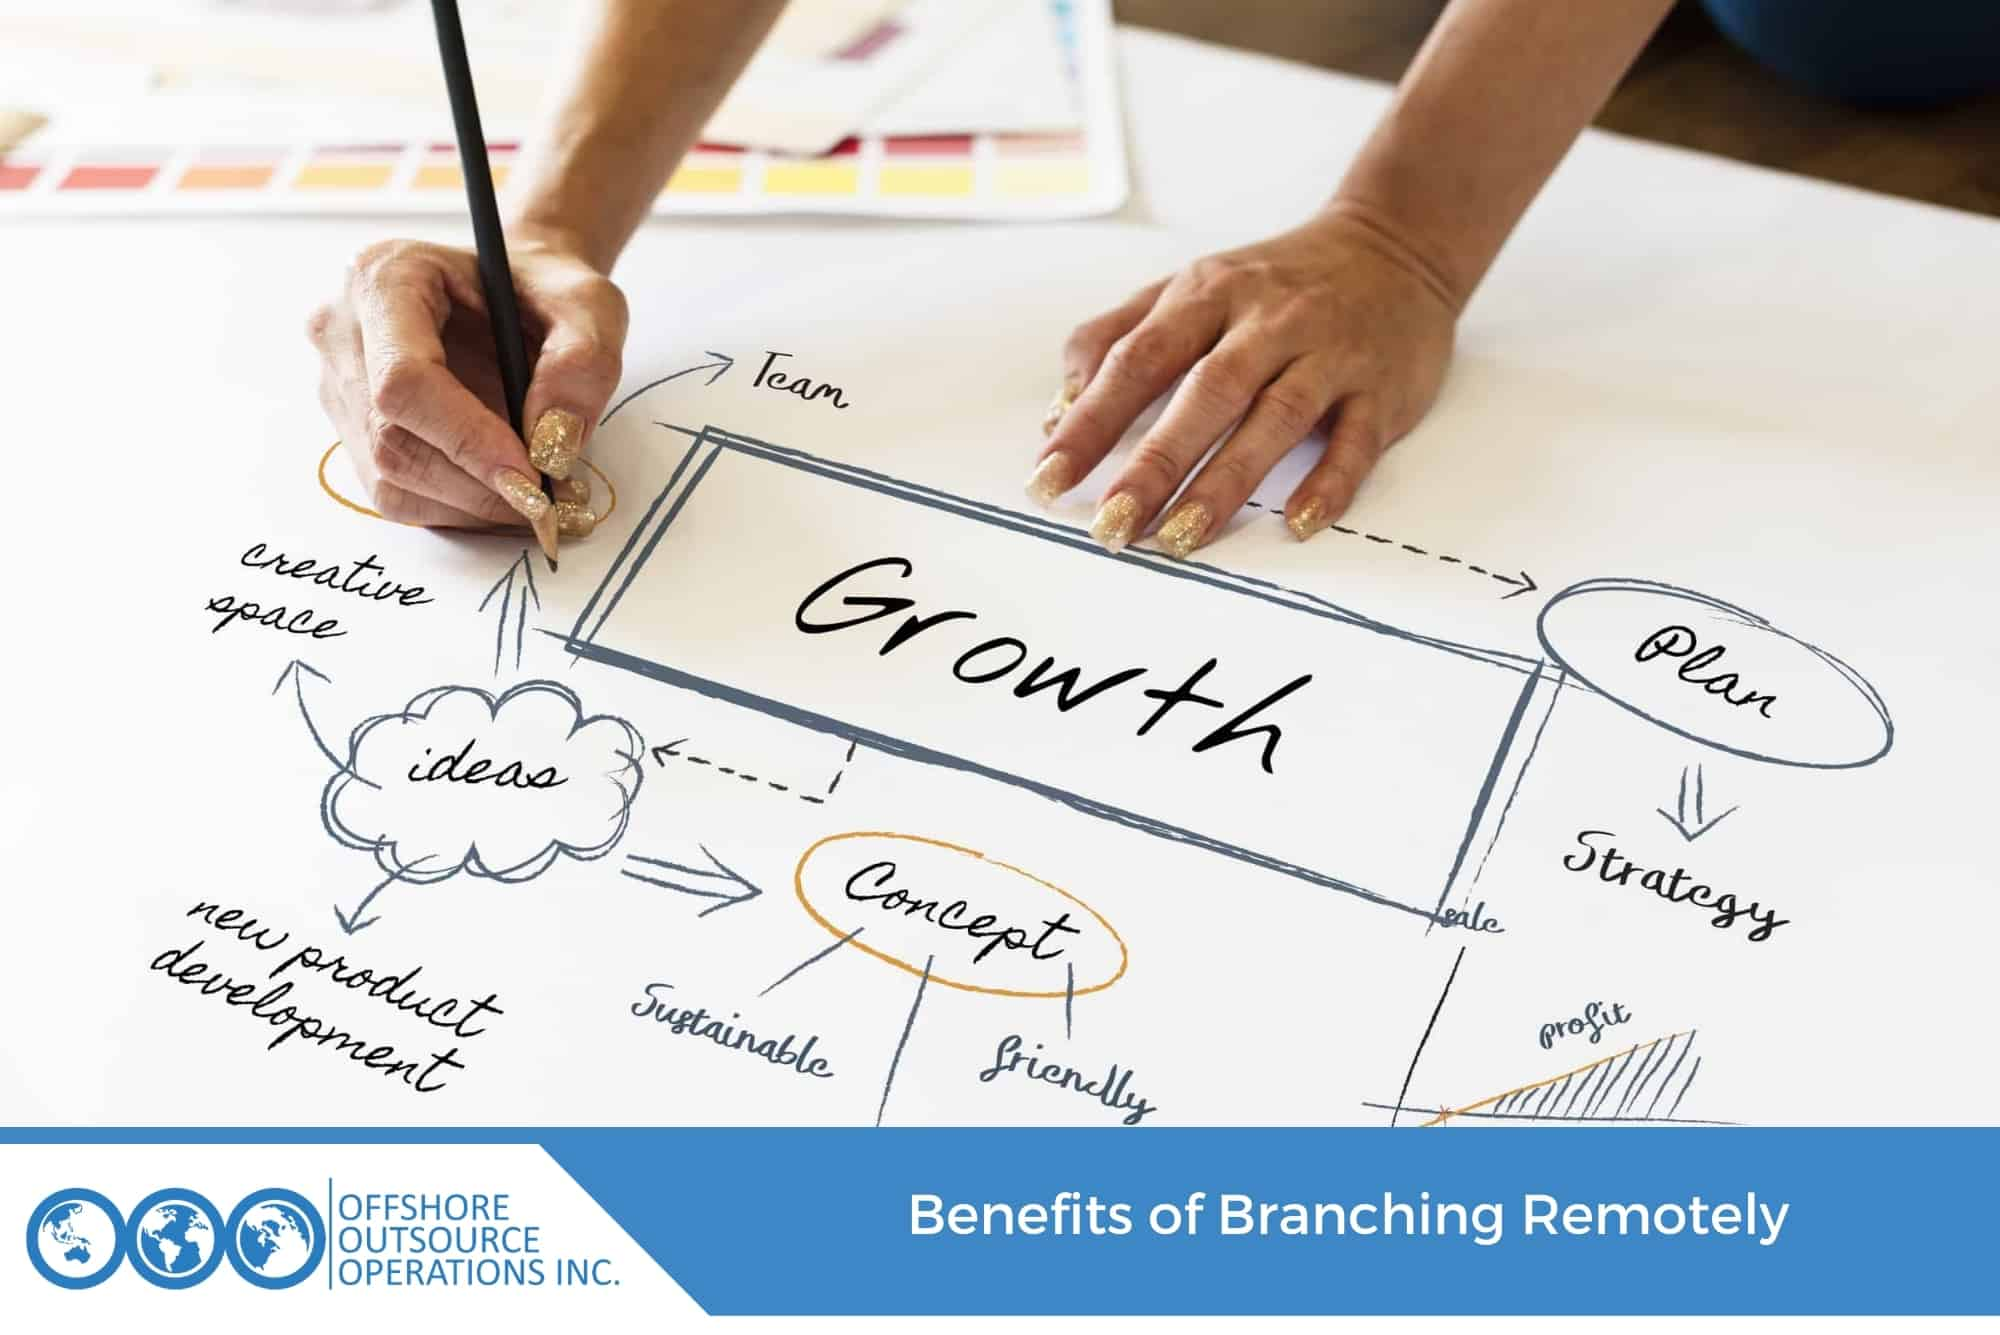 Benefits of Branching Remotely